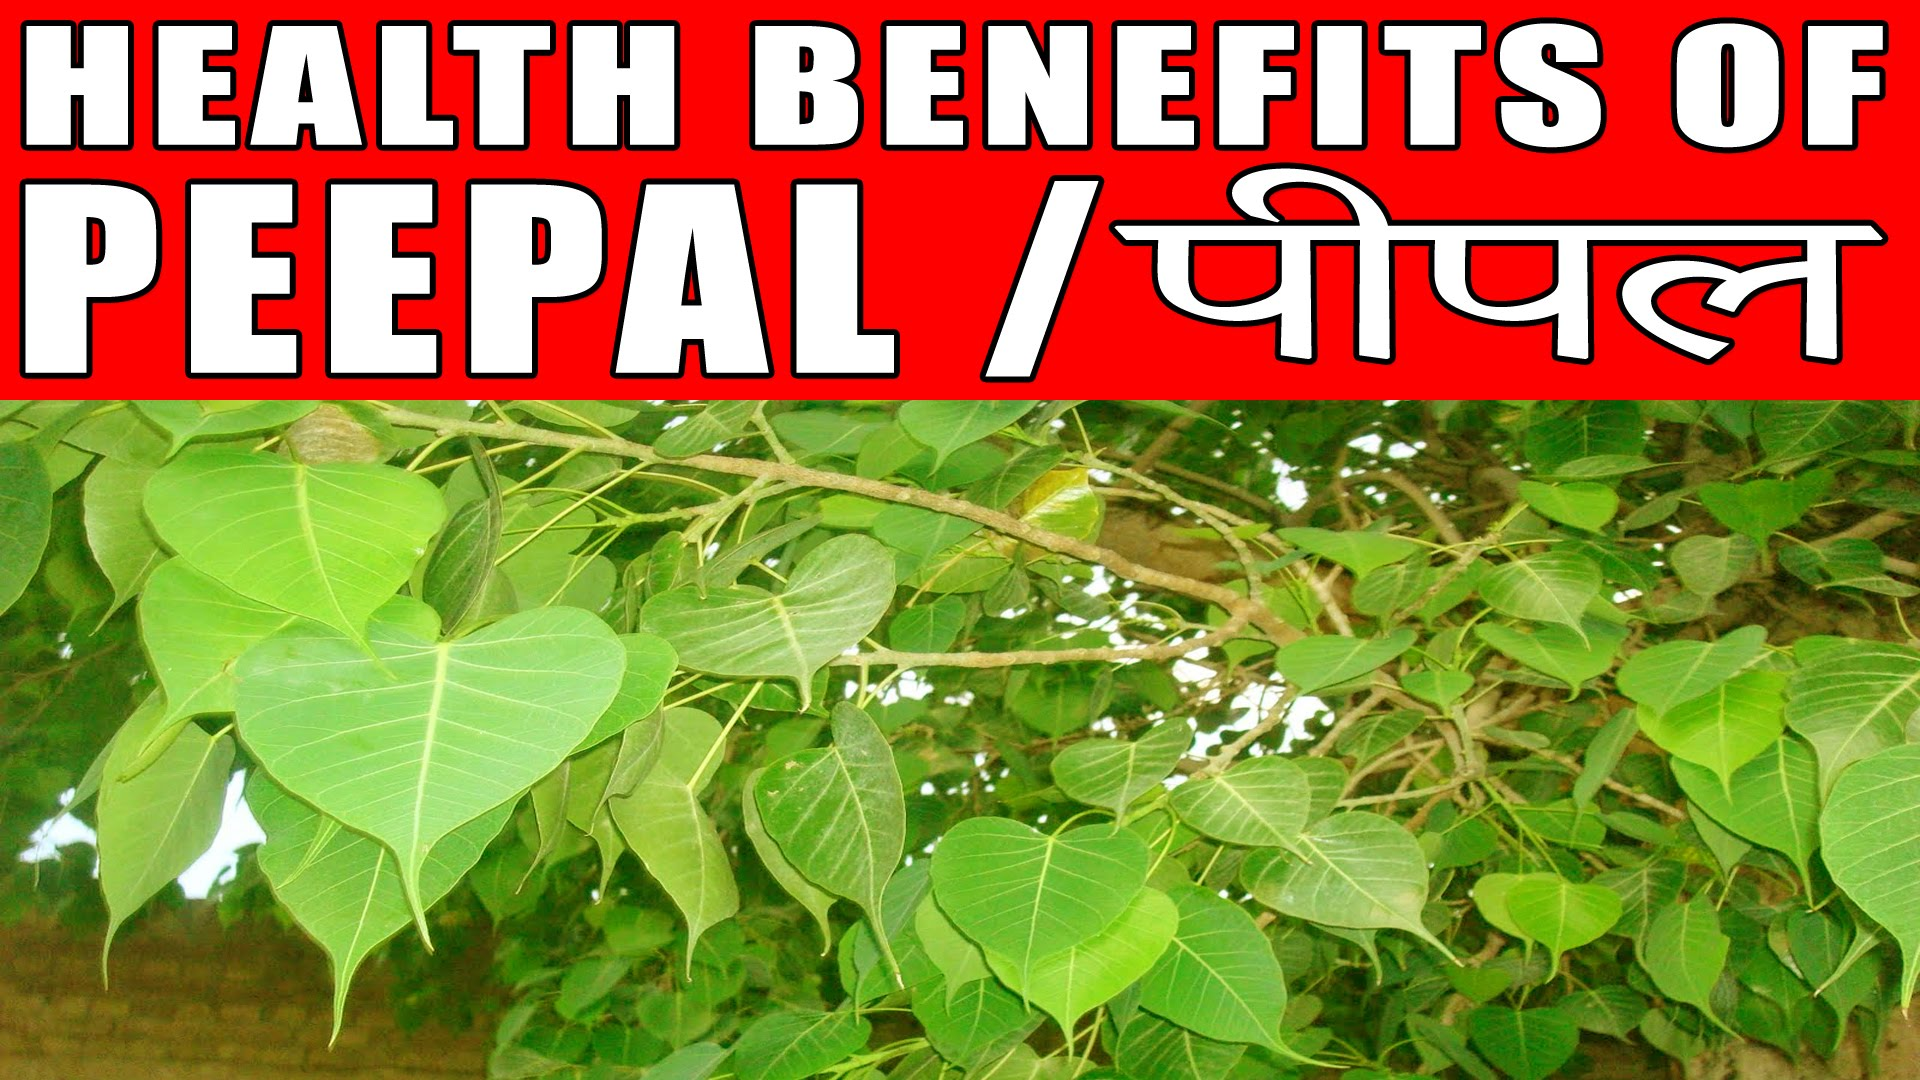 Peepal benefits in hindi